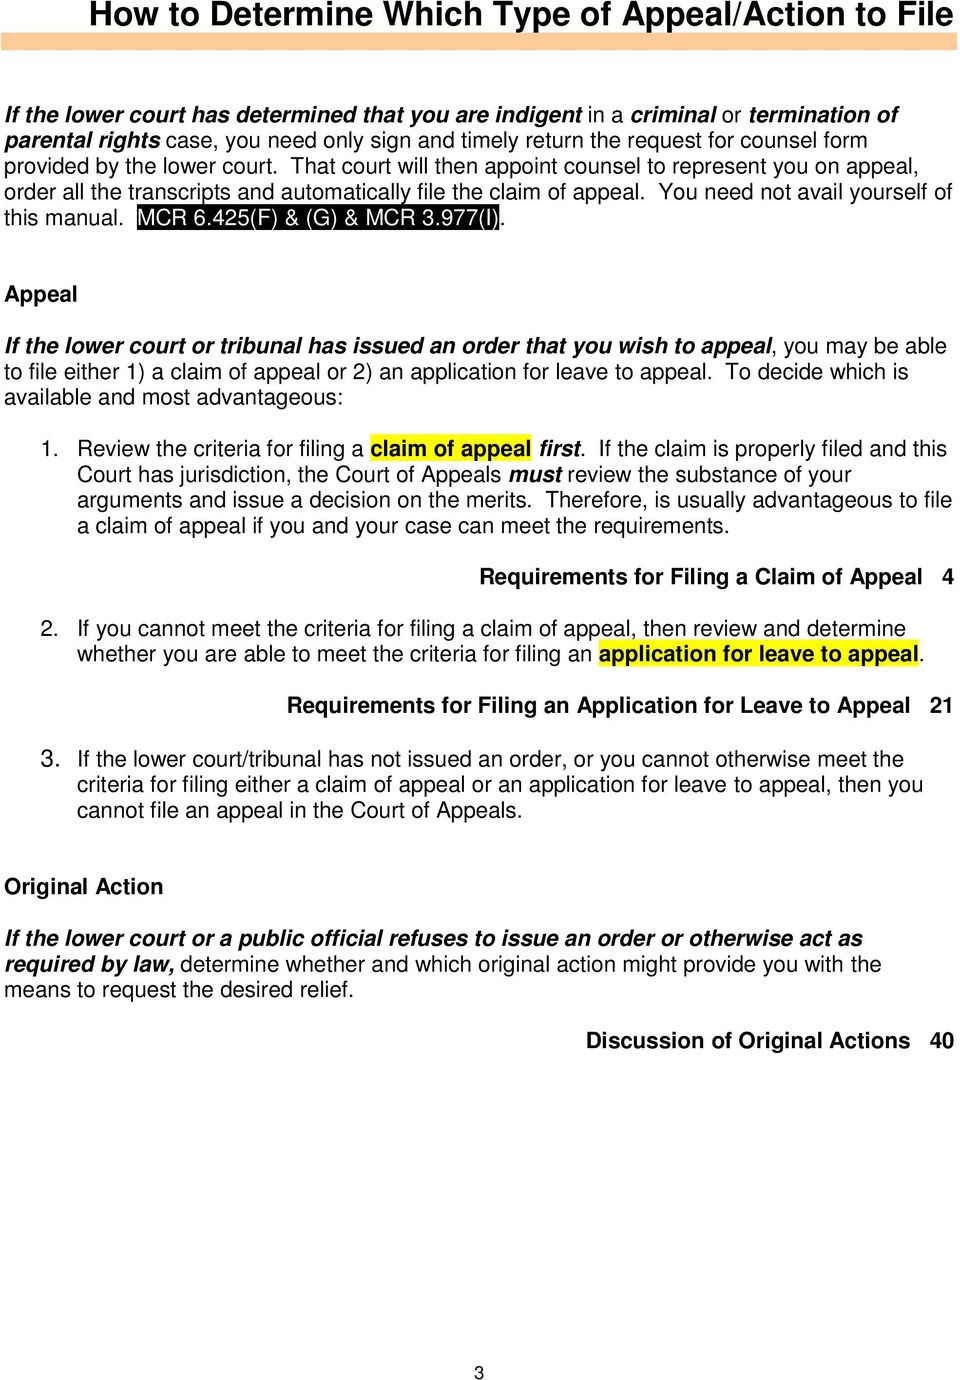 Michigan Court of Appeals - PDF